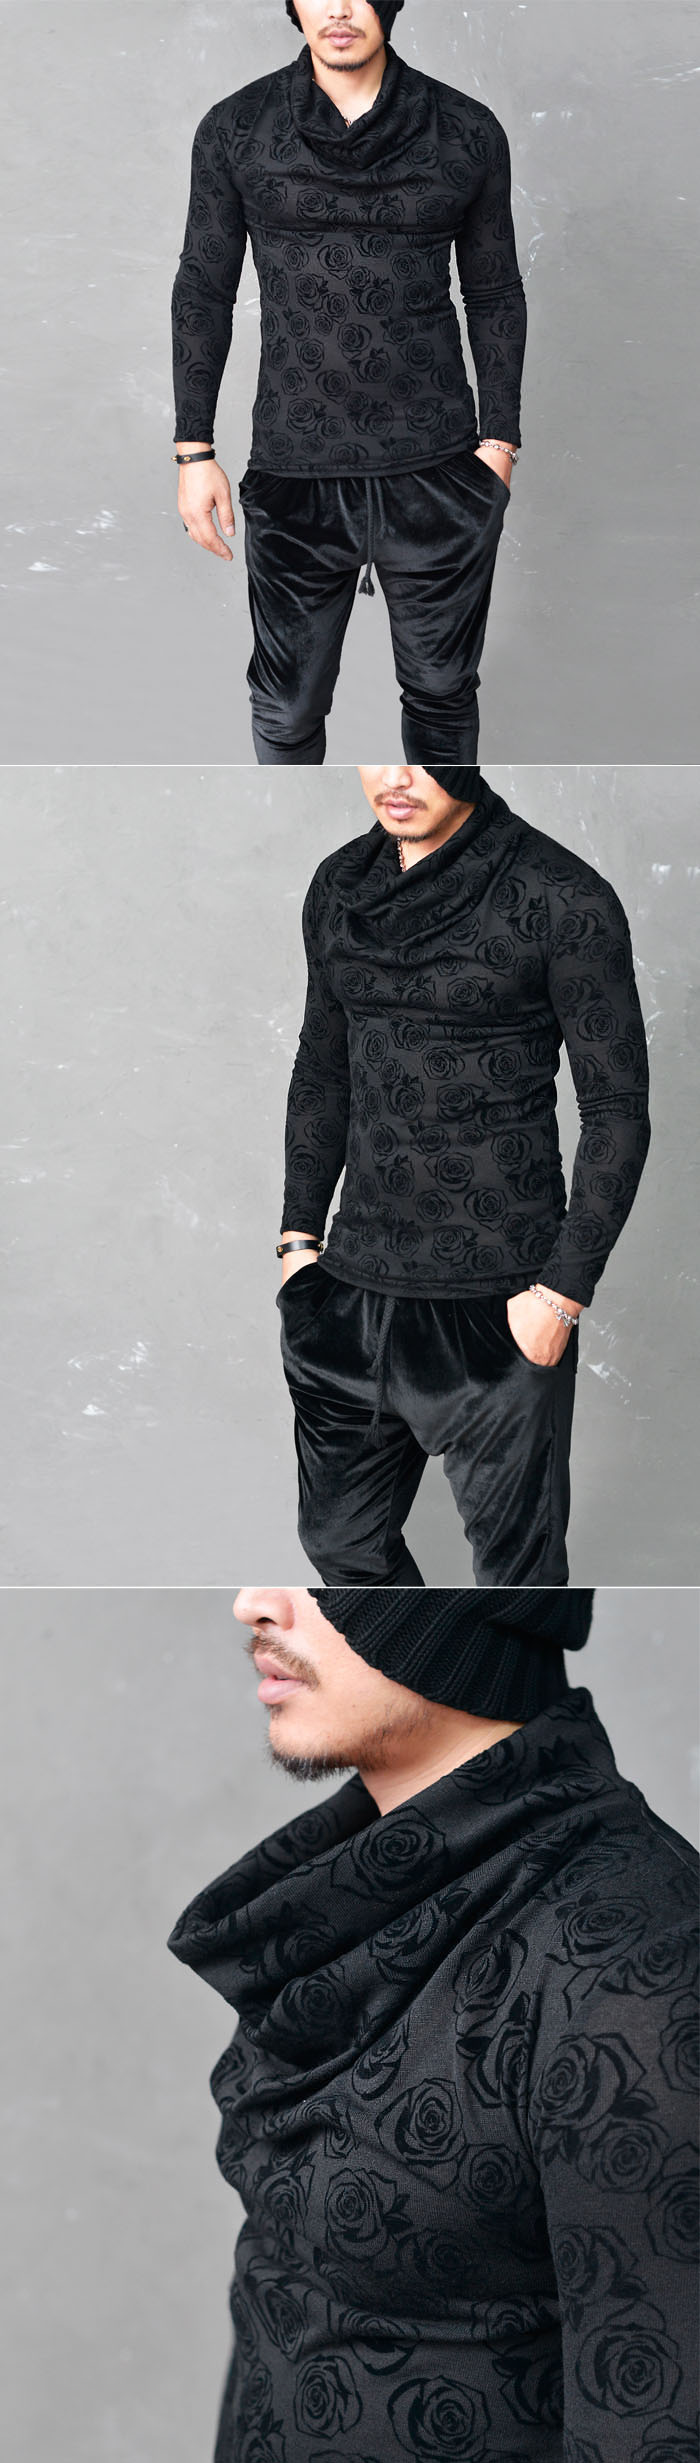 Tops :: Tees :: Skin-Tight See-through Rose Skull Turtle-Tee 602 - Mens Fashion Clothing For An Attractive Guy Look